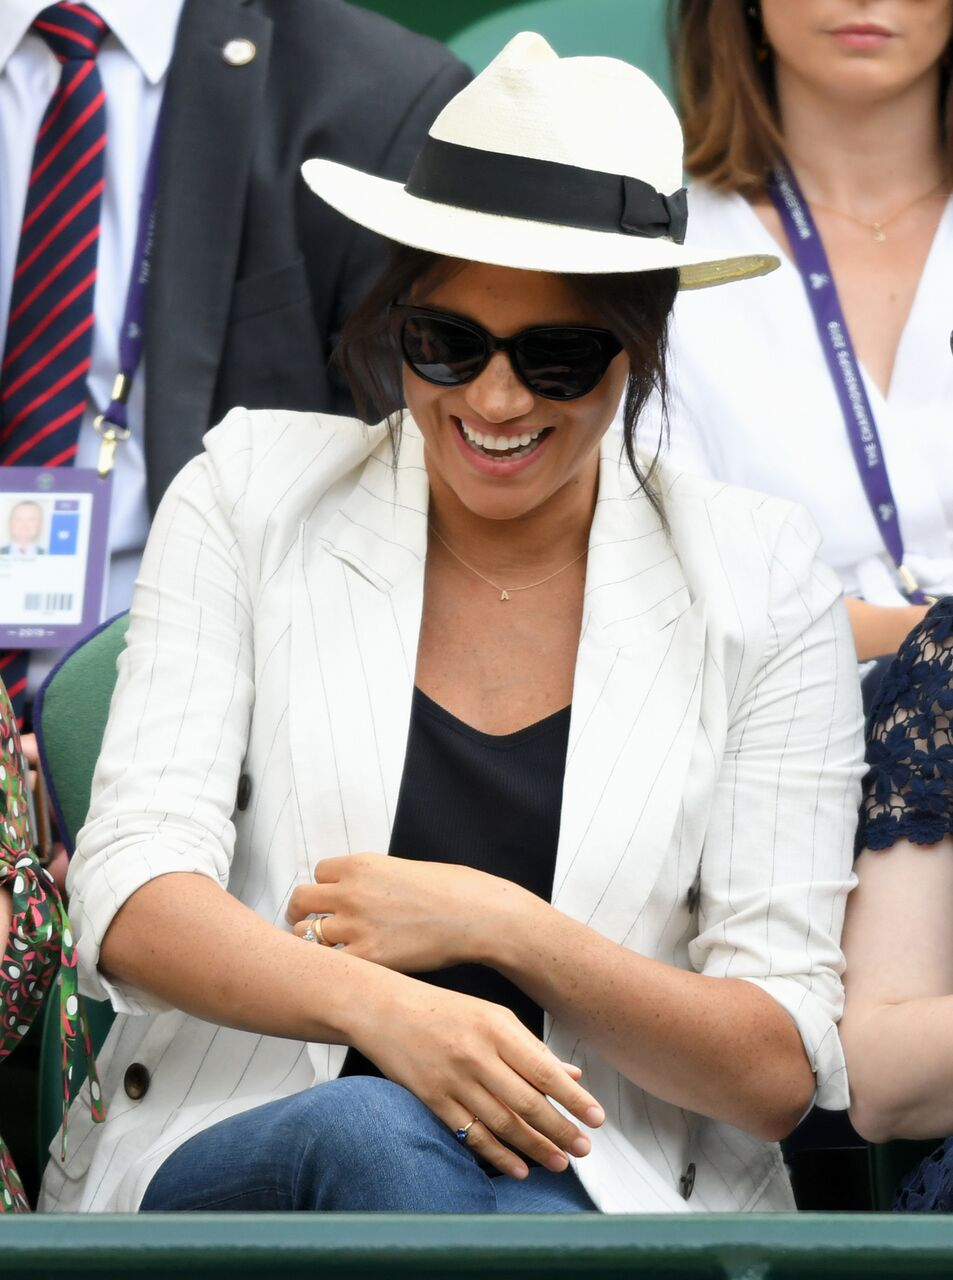 Meghan Markle at Wimbledon. | Source: Getty Images